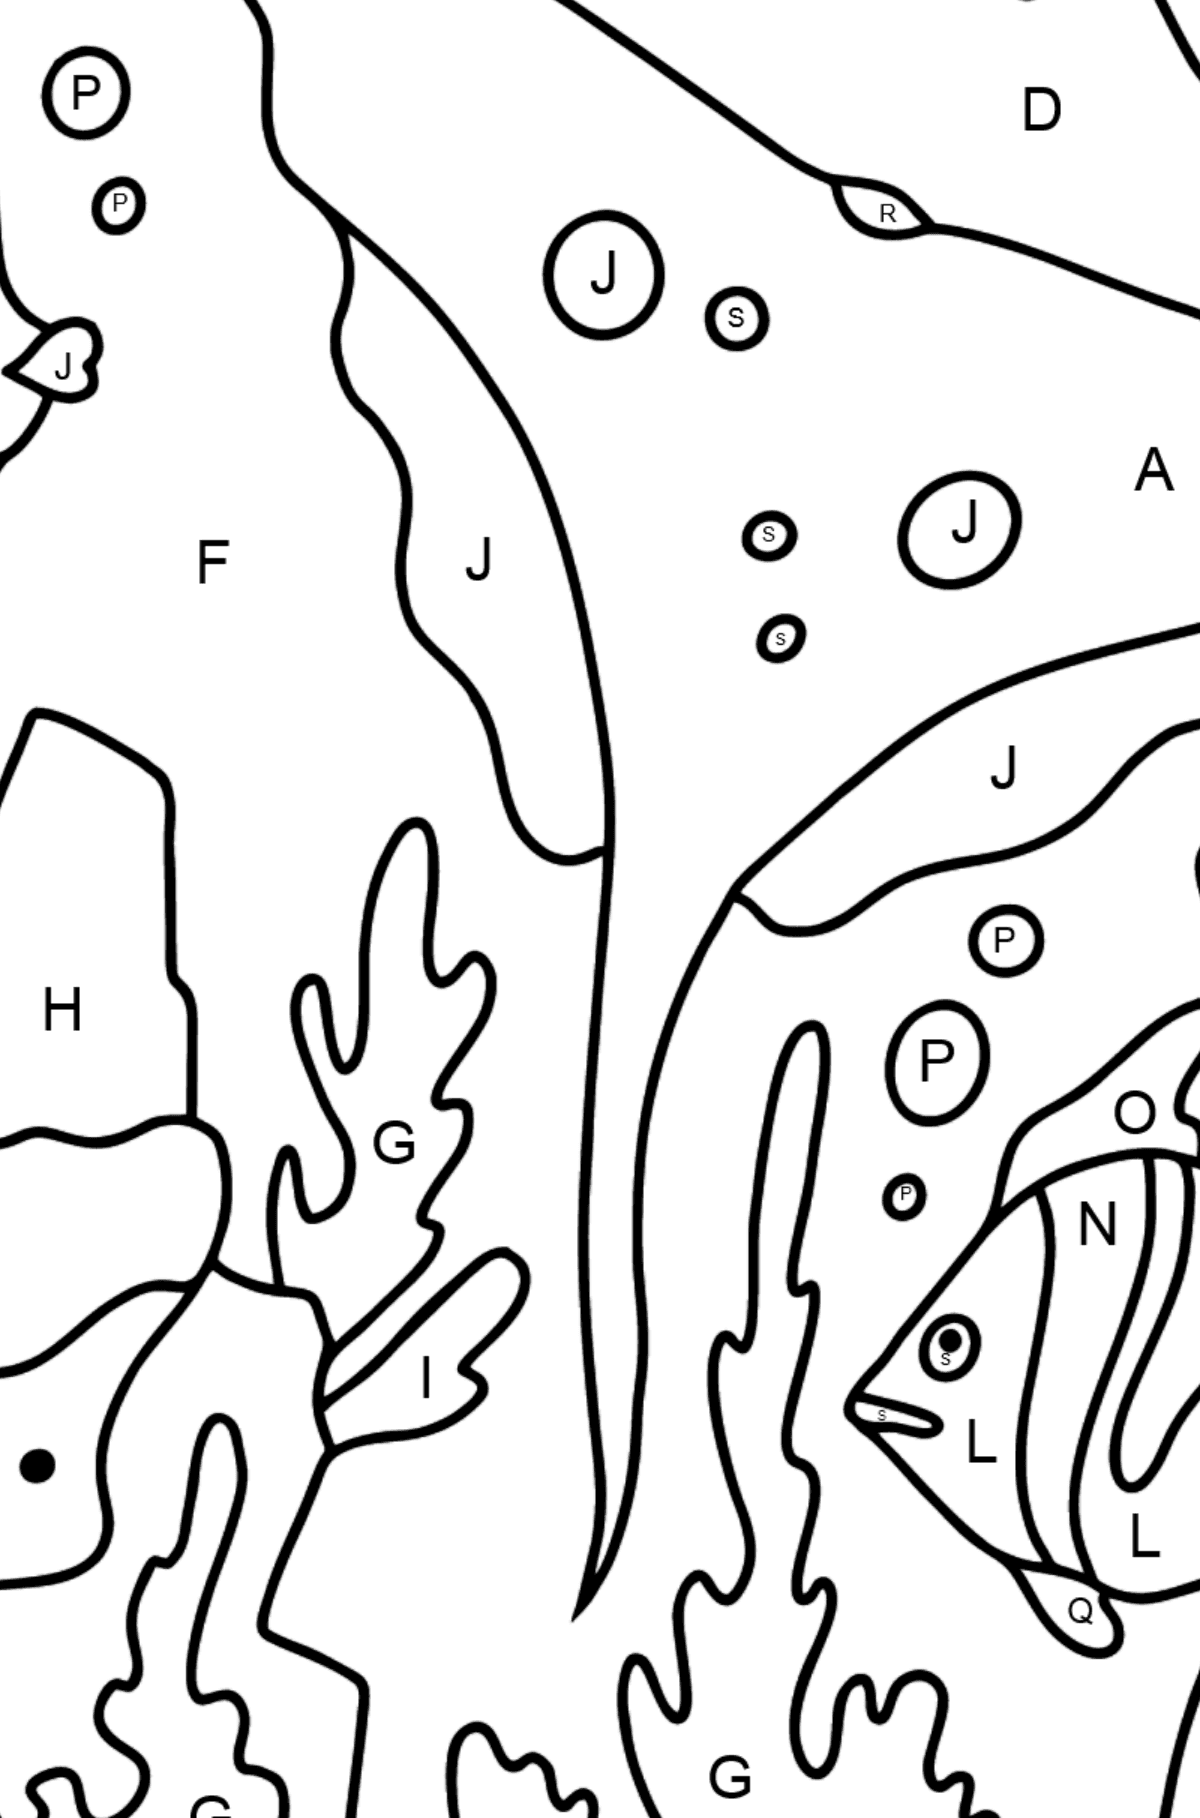 Coloring Page - Fish are Swimming past a Ray - Coloring by Letters for Kids